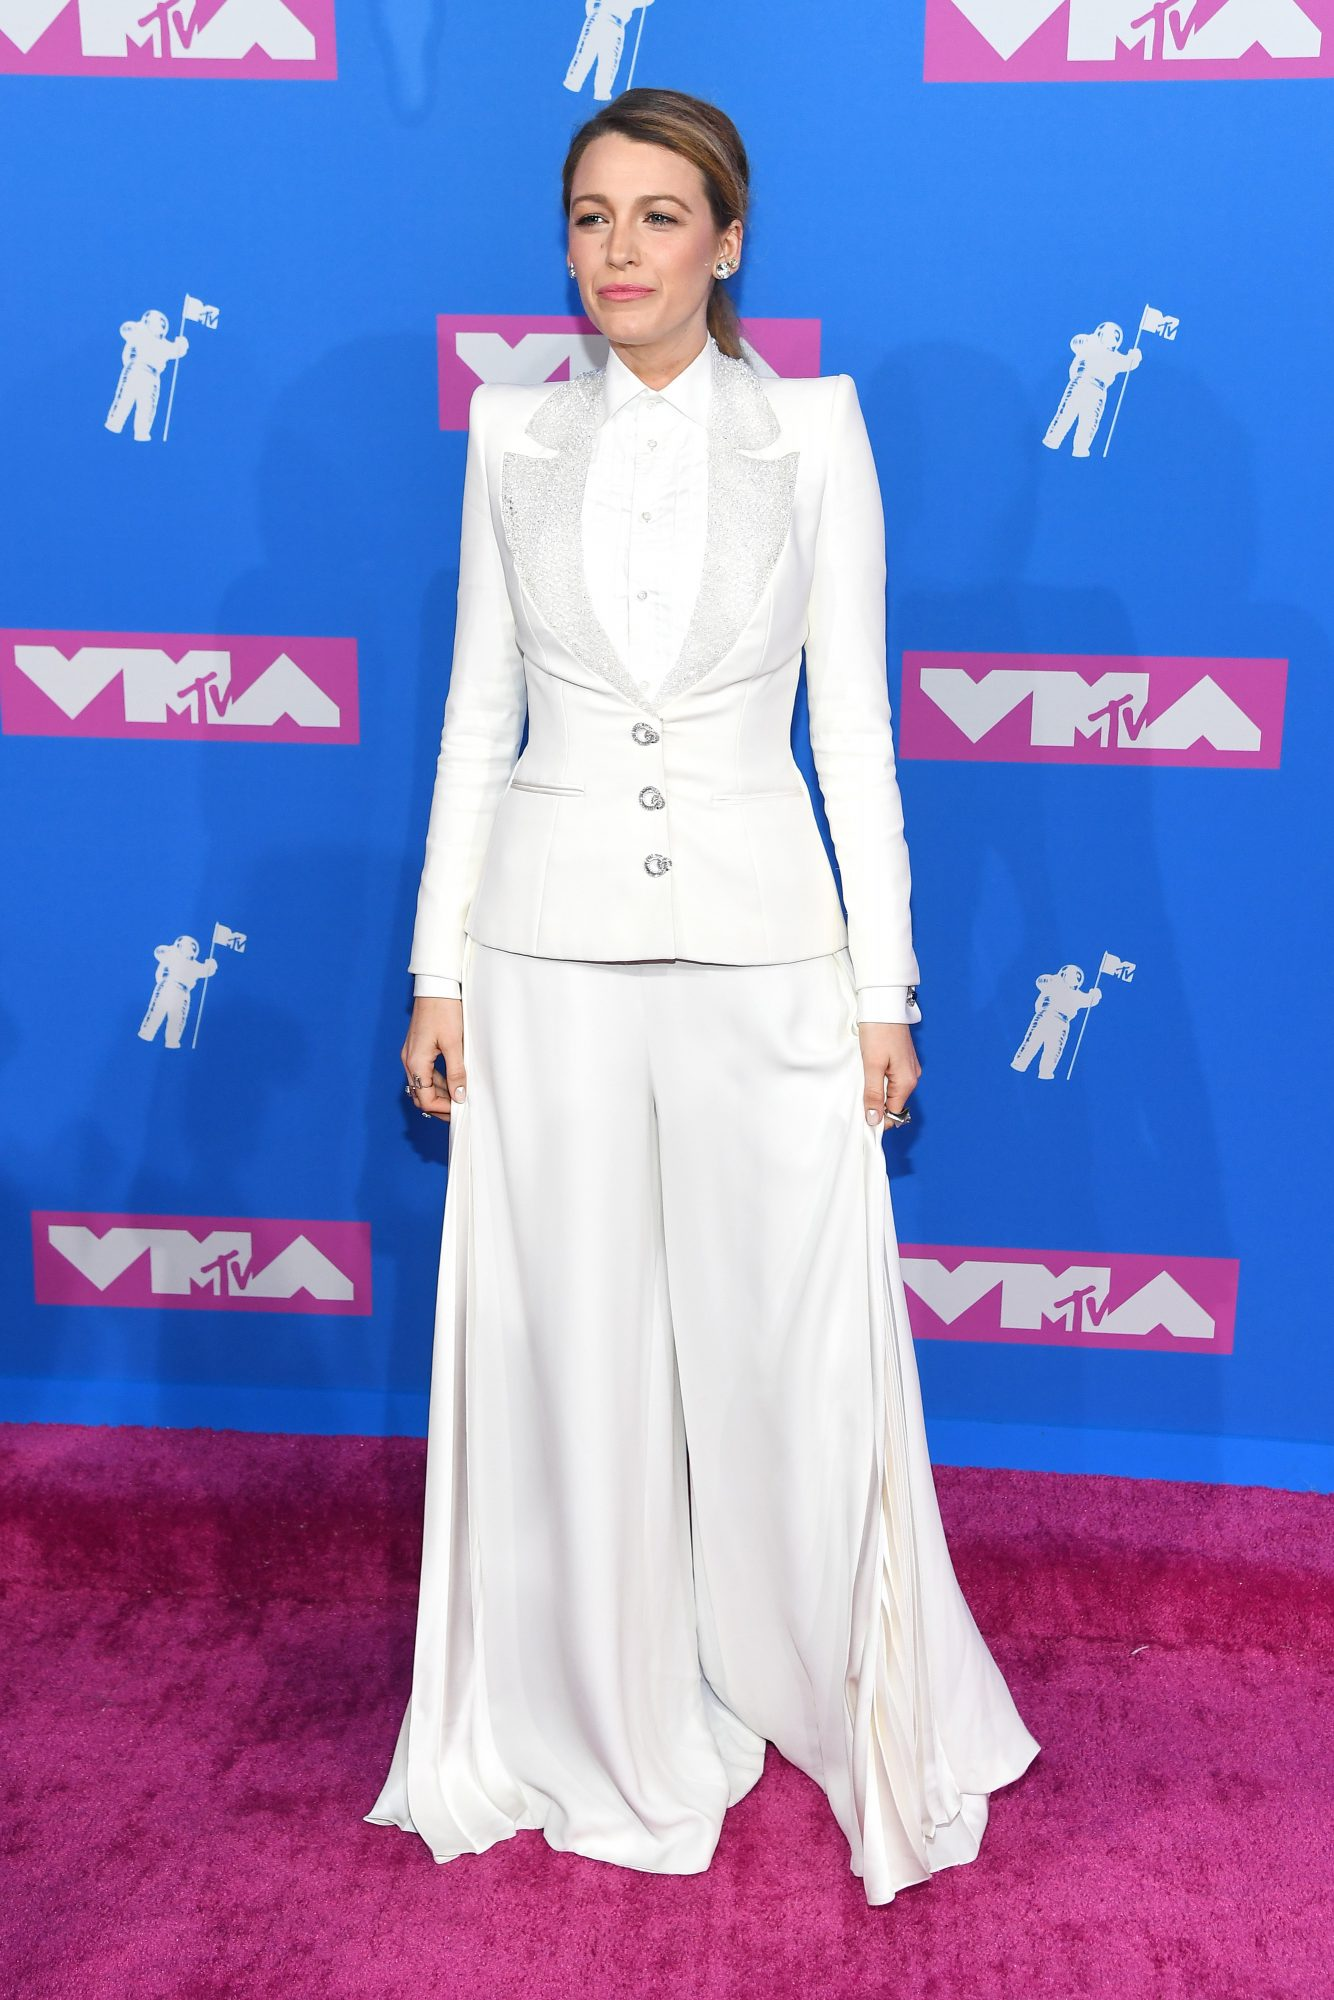 Blake Lively Shows Least Amount of Skin Ever Seen at the MTV VMAs